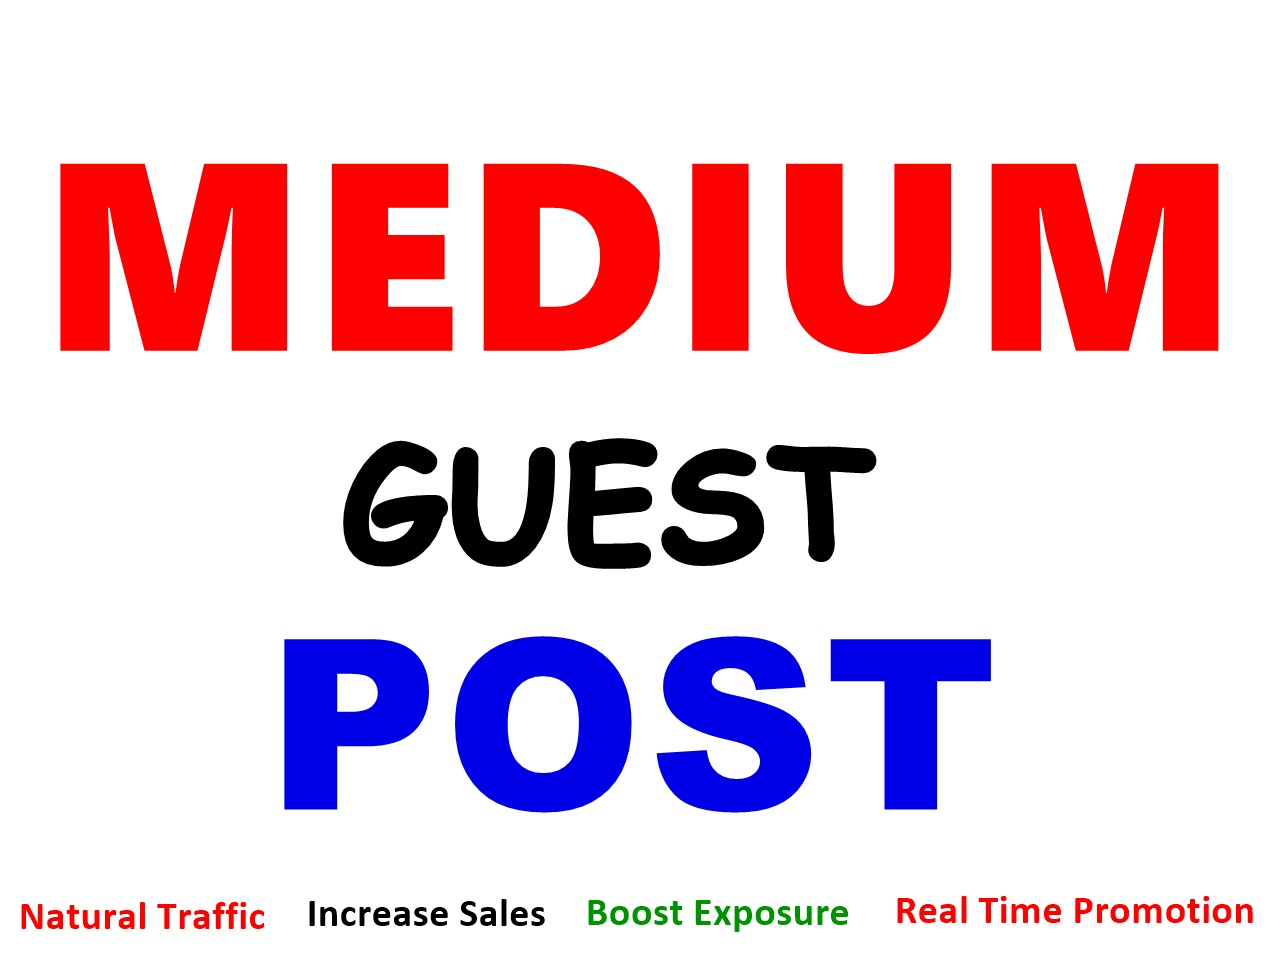 MEDIUM CHEAP GUEST Posting - Business Product Or Webs...